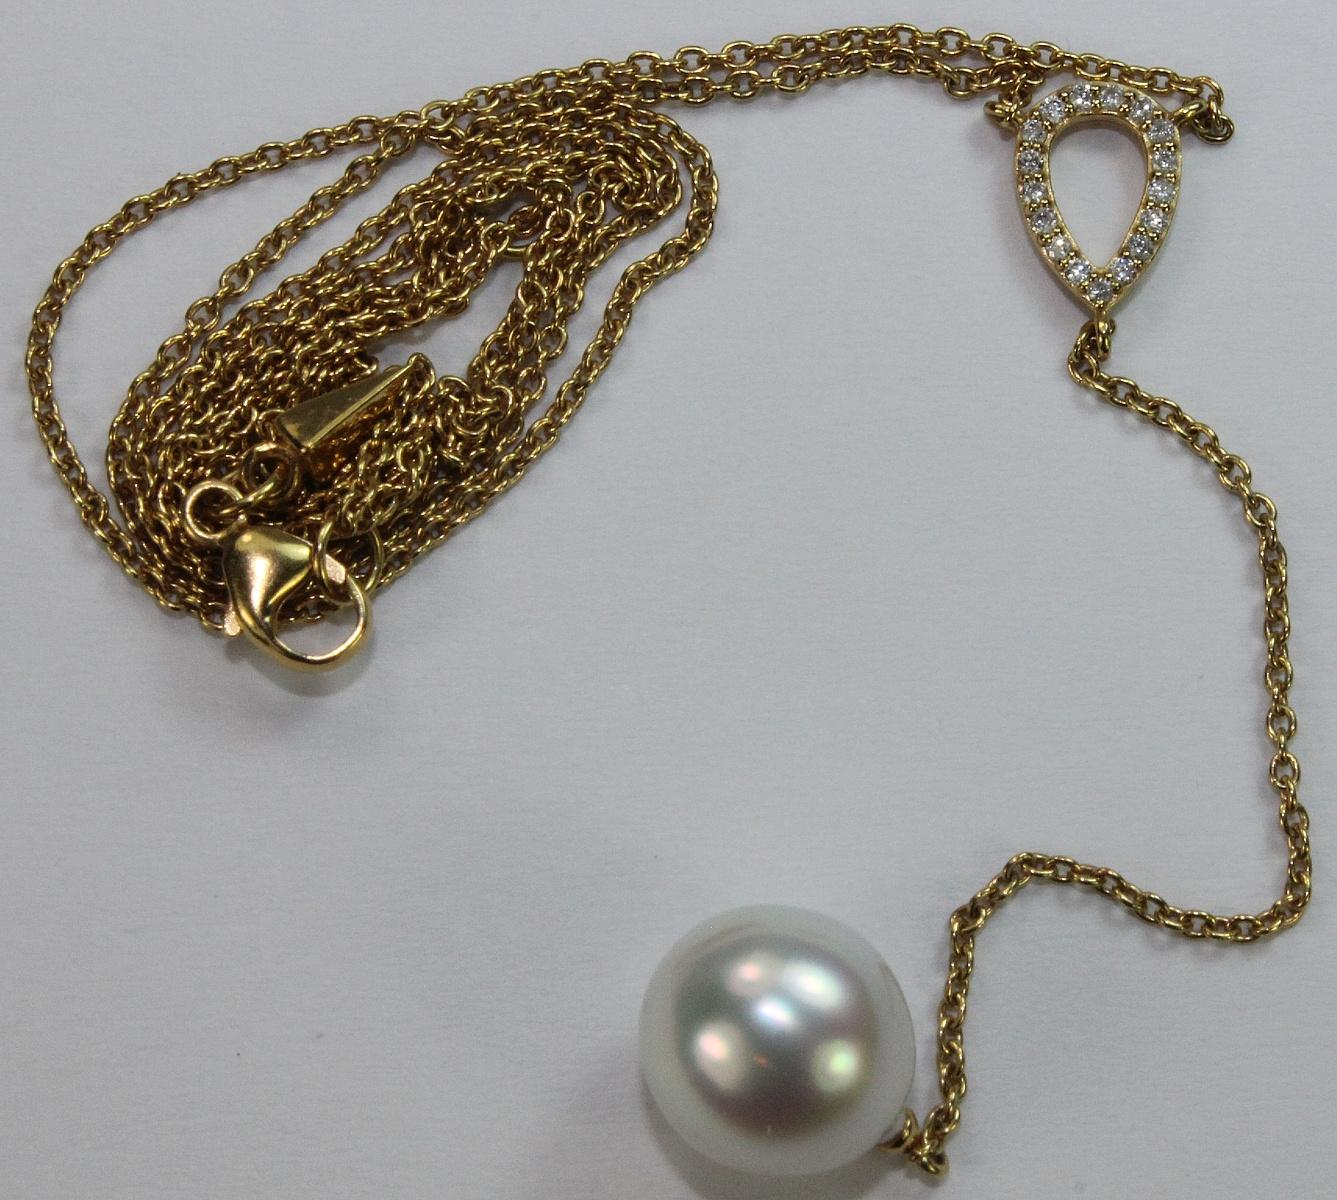 Pearl Pendant on a 9ct Yellow Gold Chain